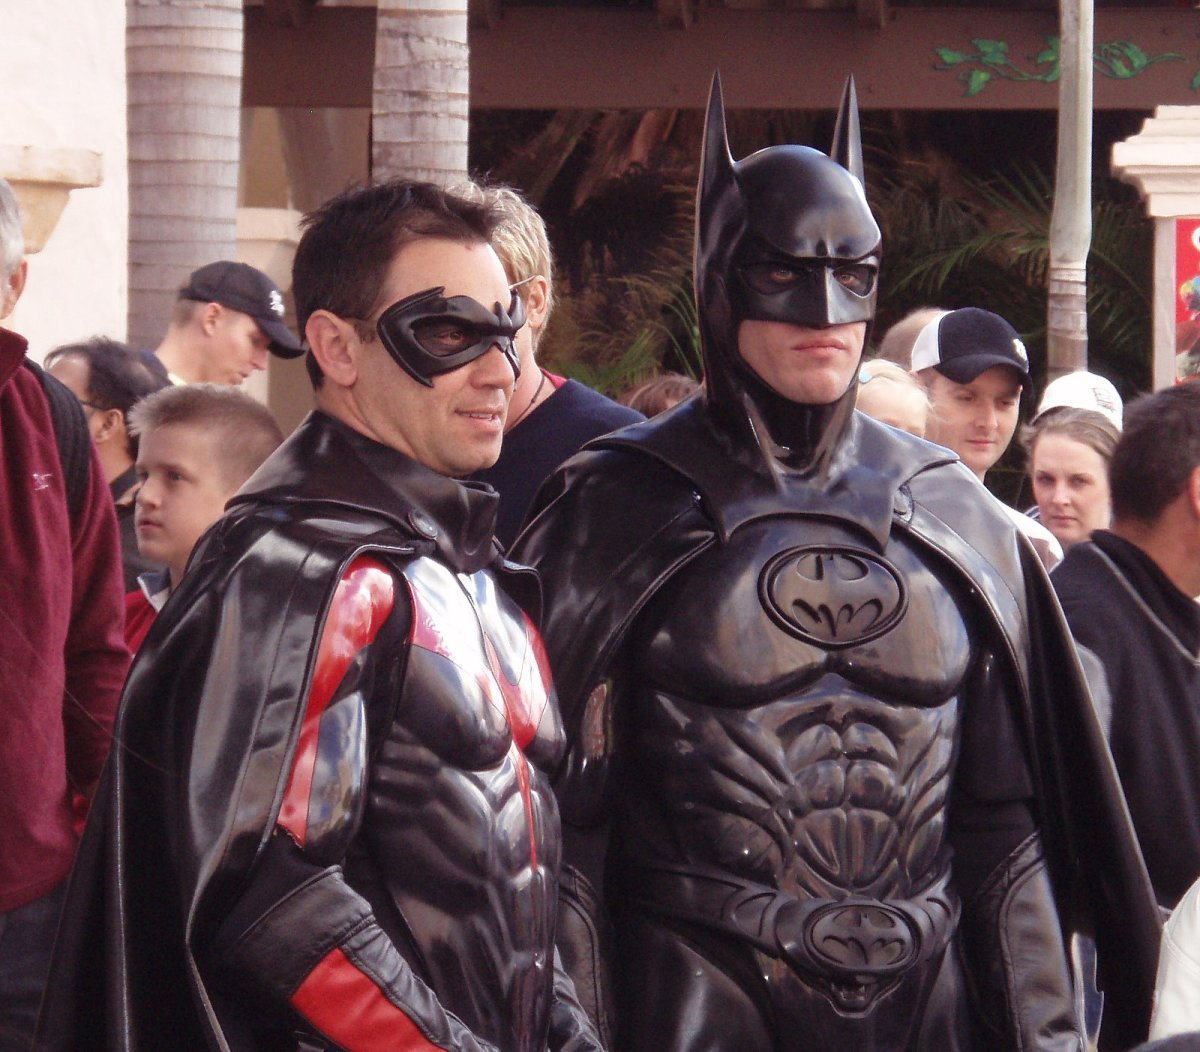 Little did I know that the role of colonoscopy sidekick required the composure of a superhero.  We were headed for trouble.